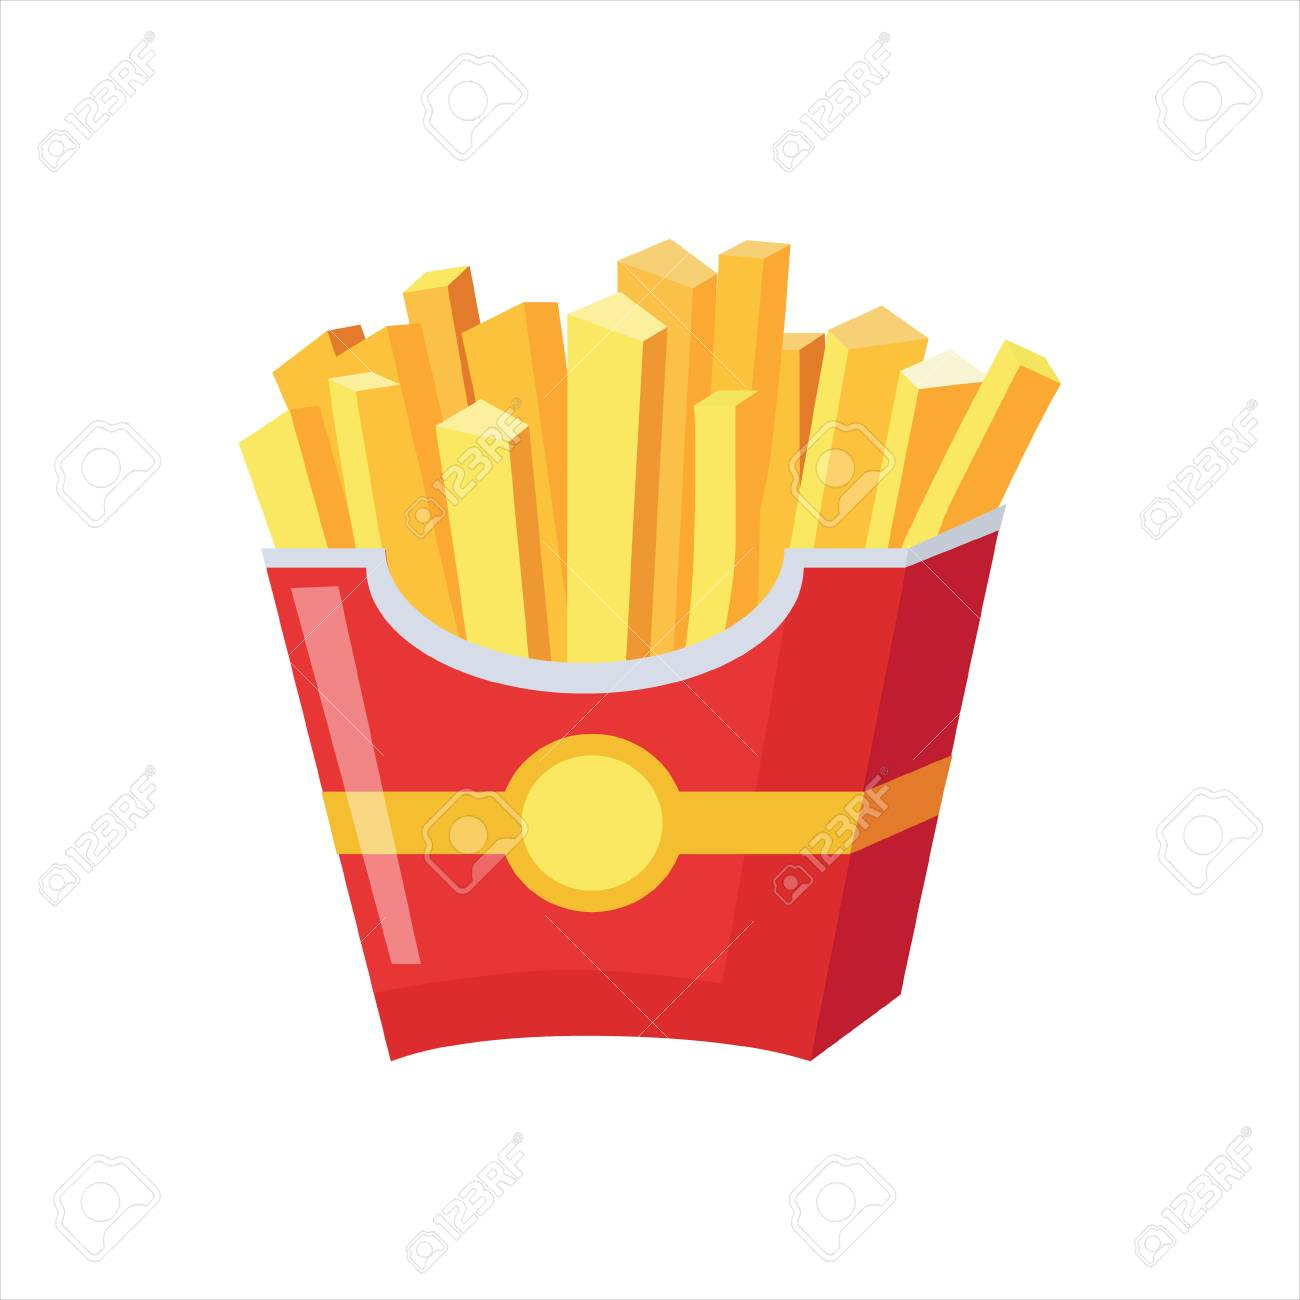 paper pack of french fries, street fast food cafe menu item colorful